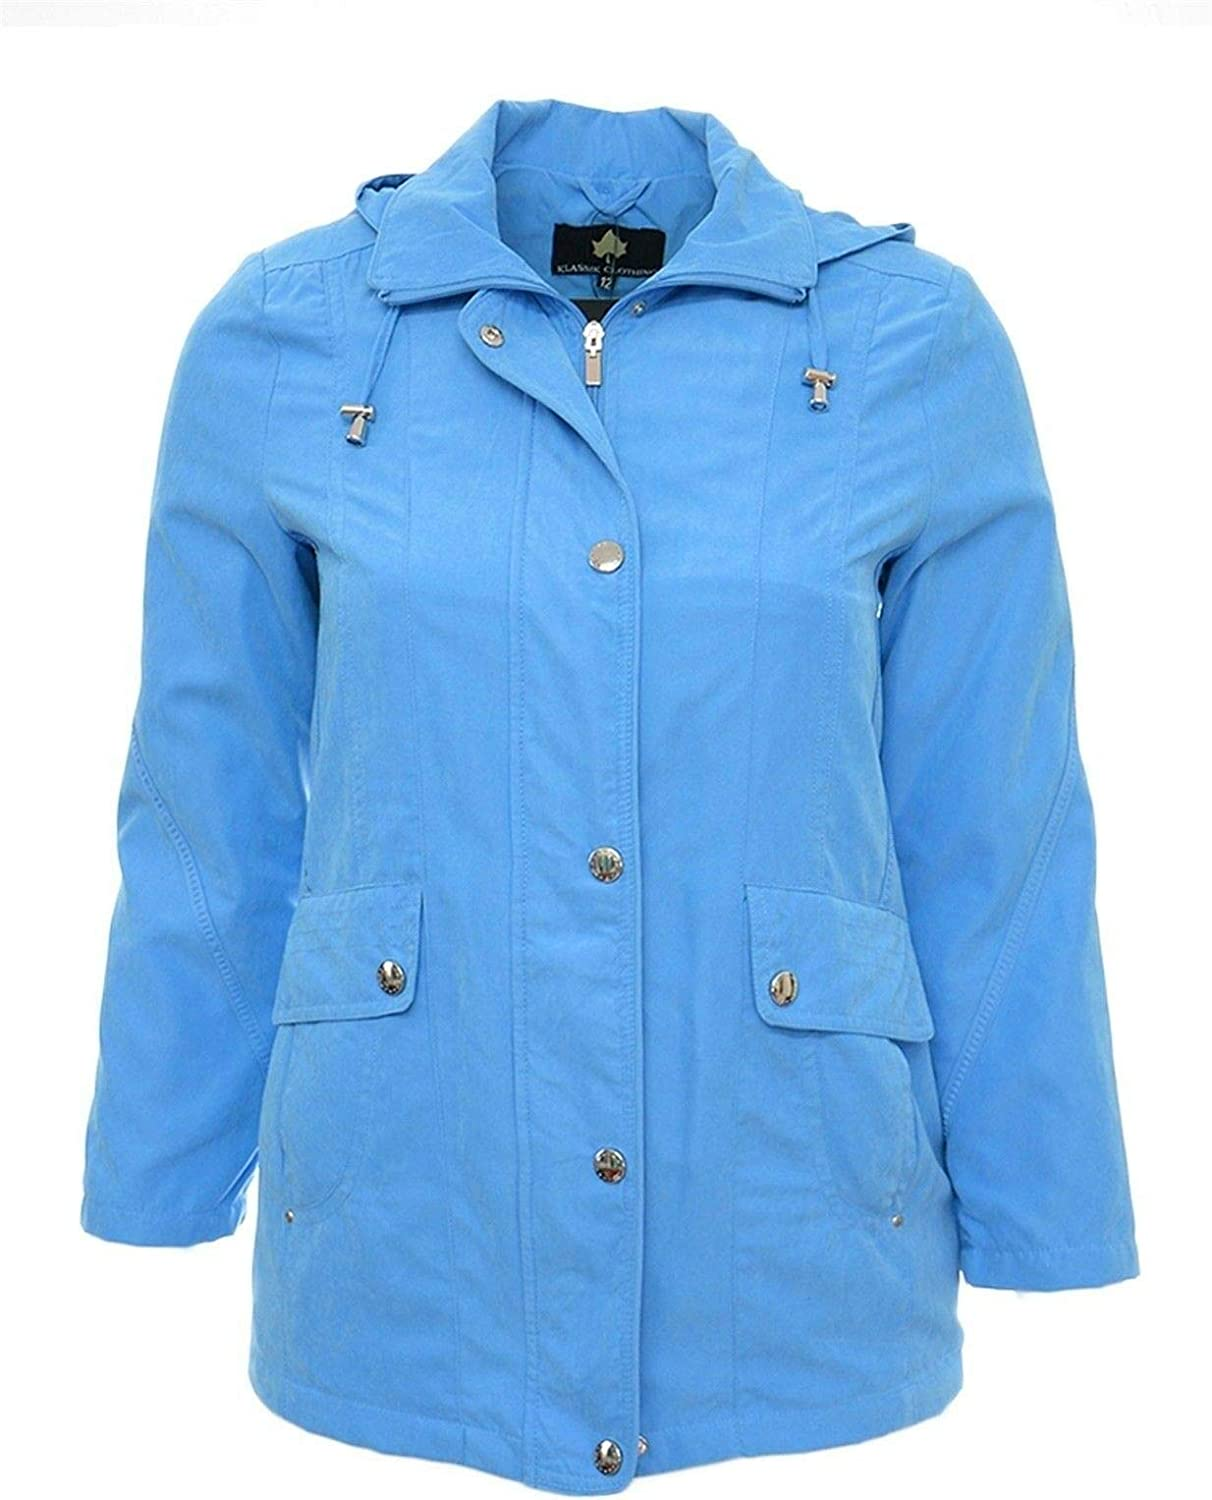 Womens 10-28 Soft Touch Marine Blue Parker Coat Hooded Jacket Ladies Plus Size